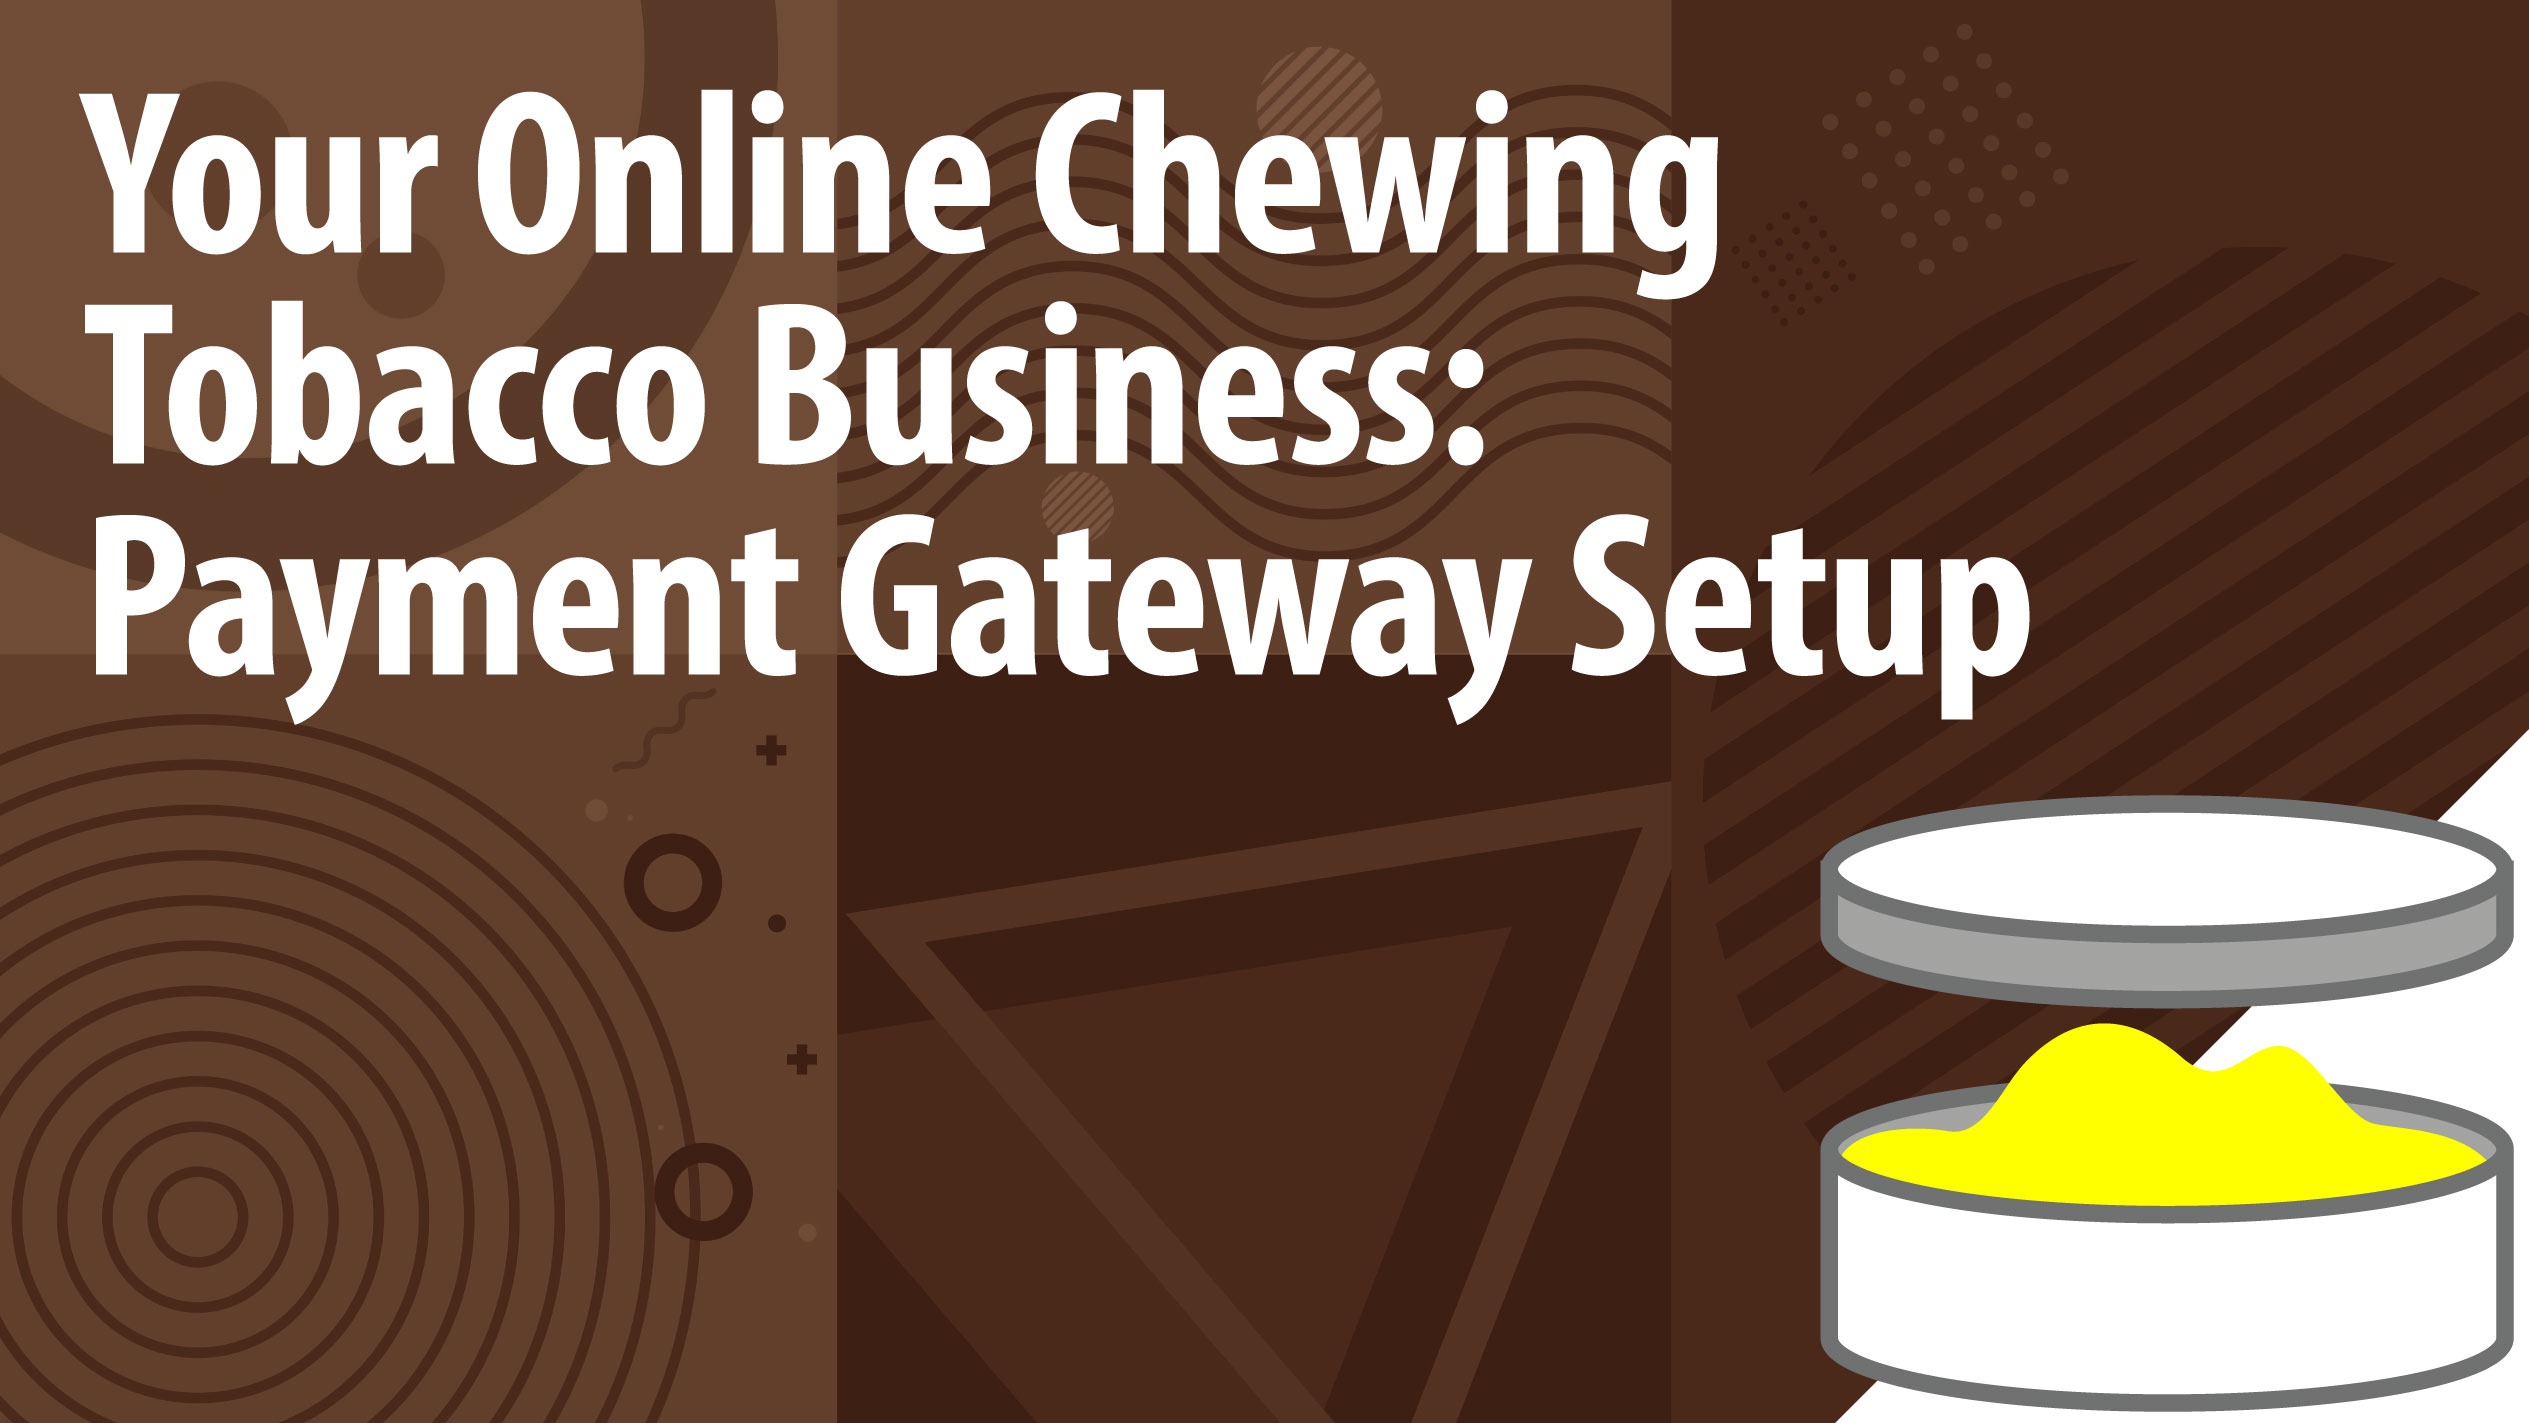 Your Online Chewing Tobacco Business: Payment Gateway Setup